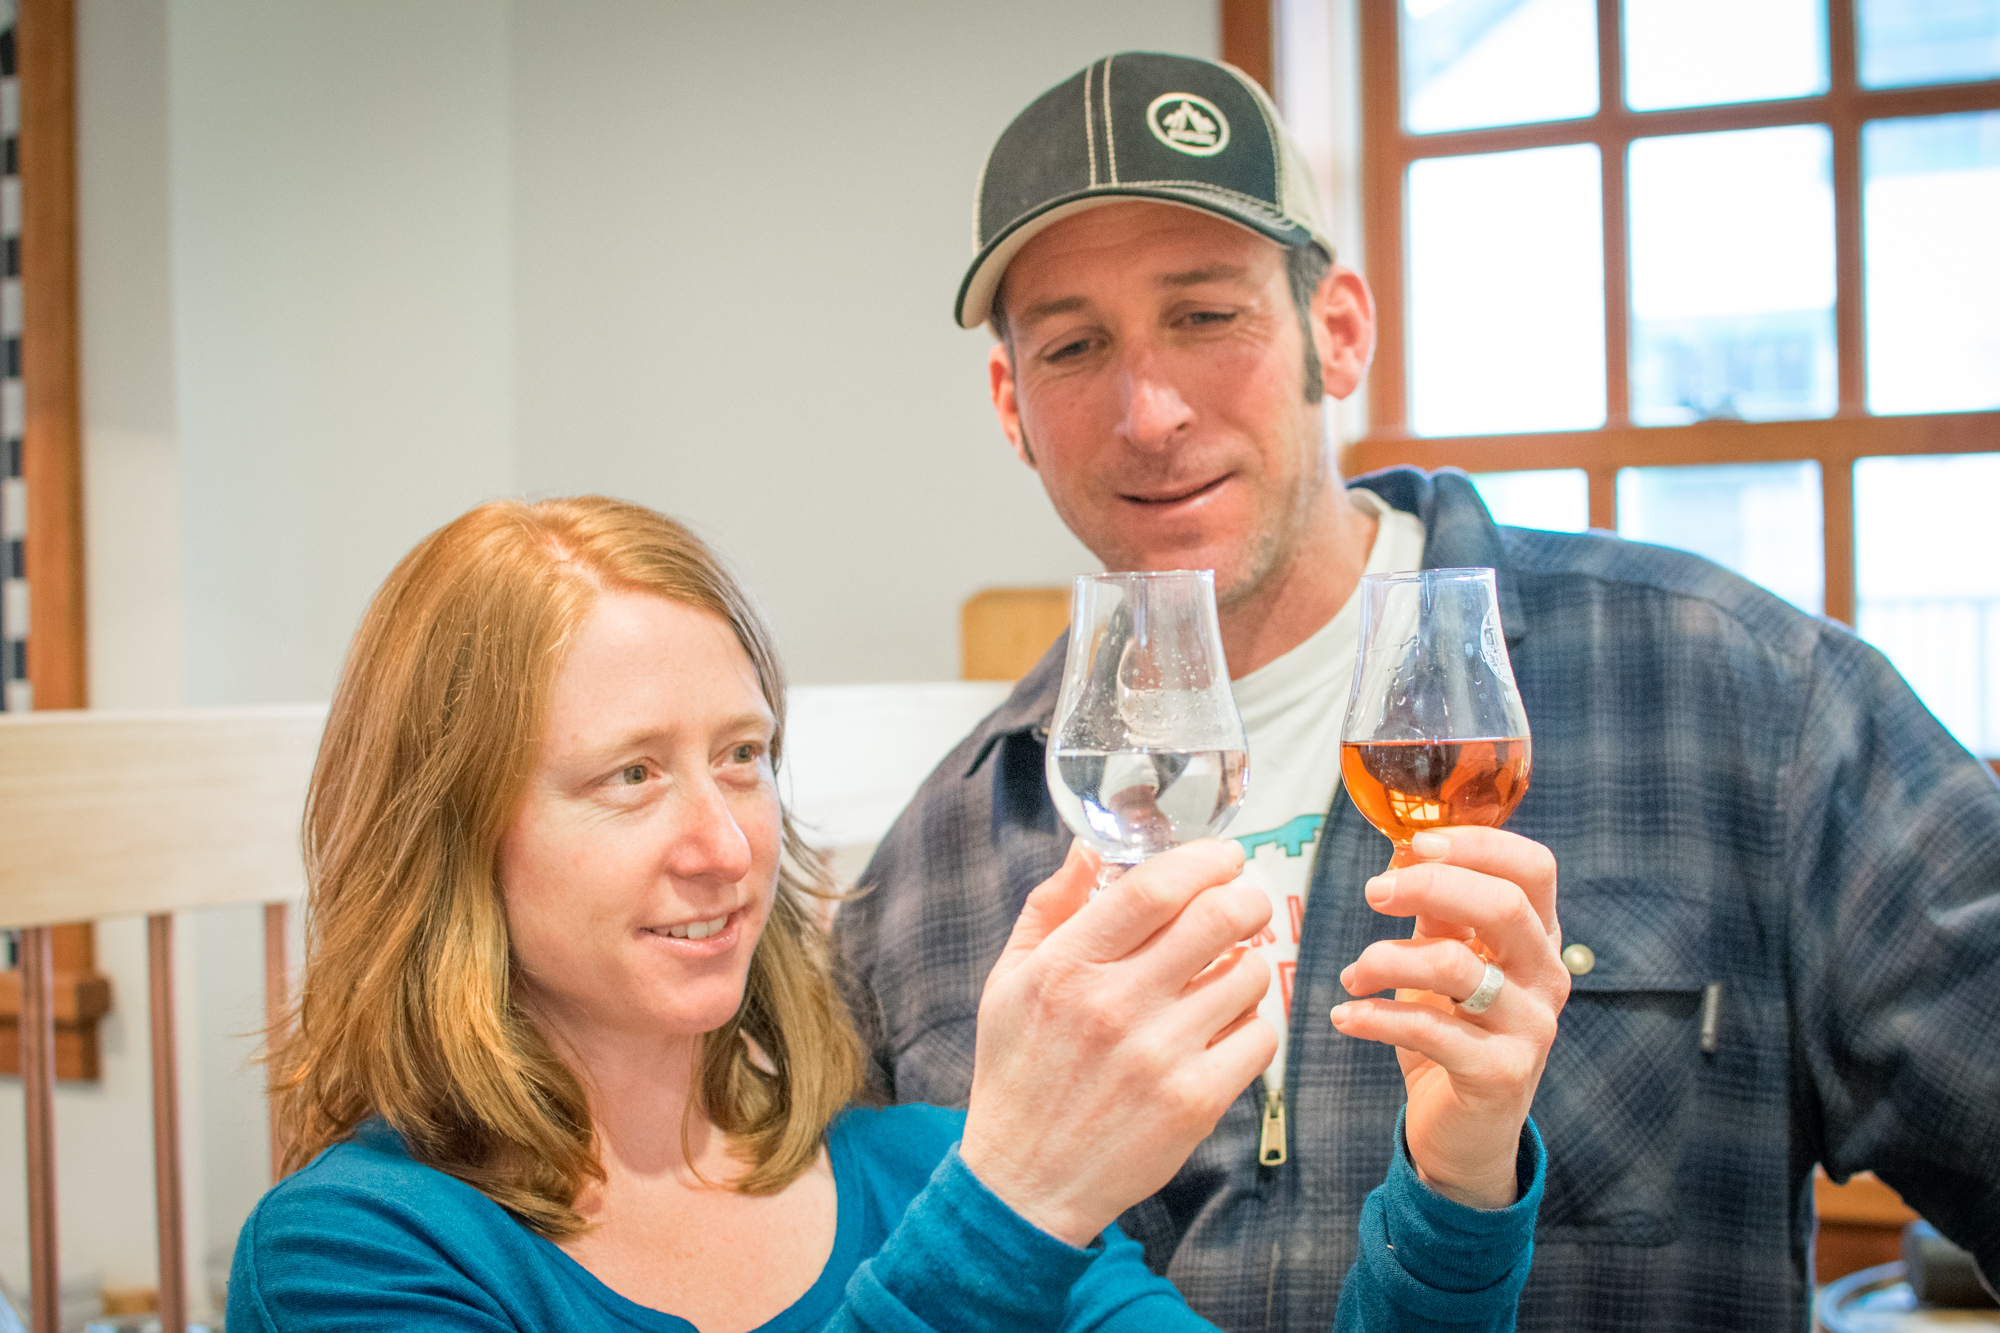 In Haines, wife and husband team Heather Shade and Sean Copeland distill small batch artisanal spirits with a taste of Alaska. Photo by Bethany Goodrich